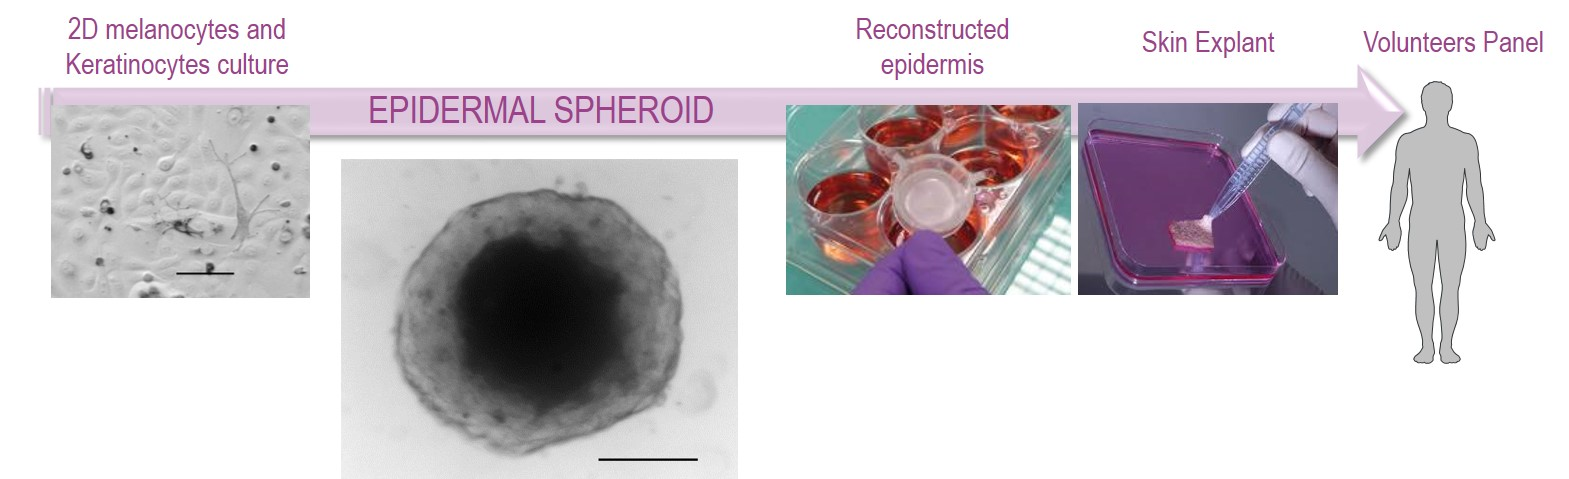 Positionning of the epidemal spheroid among skin models